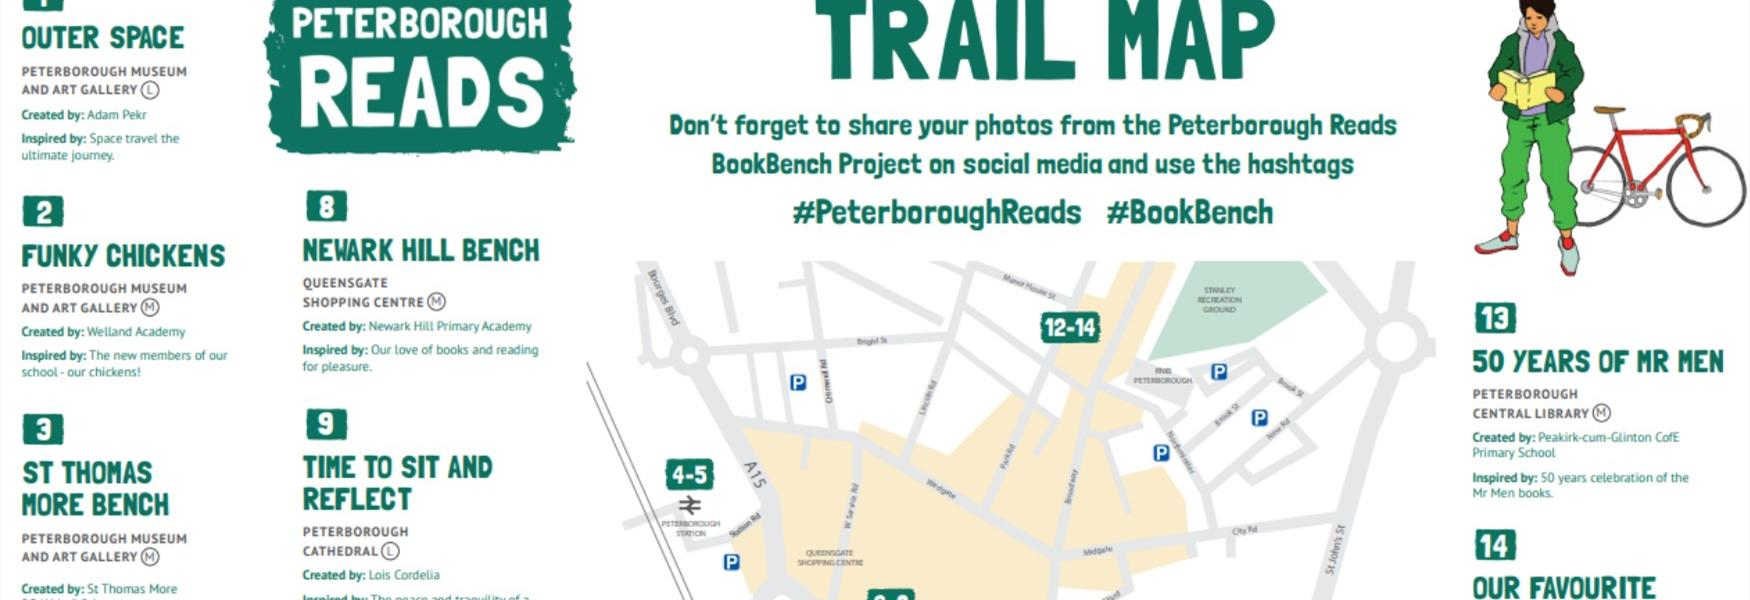 BookBench Trail Map (snippet)